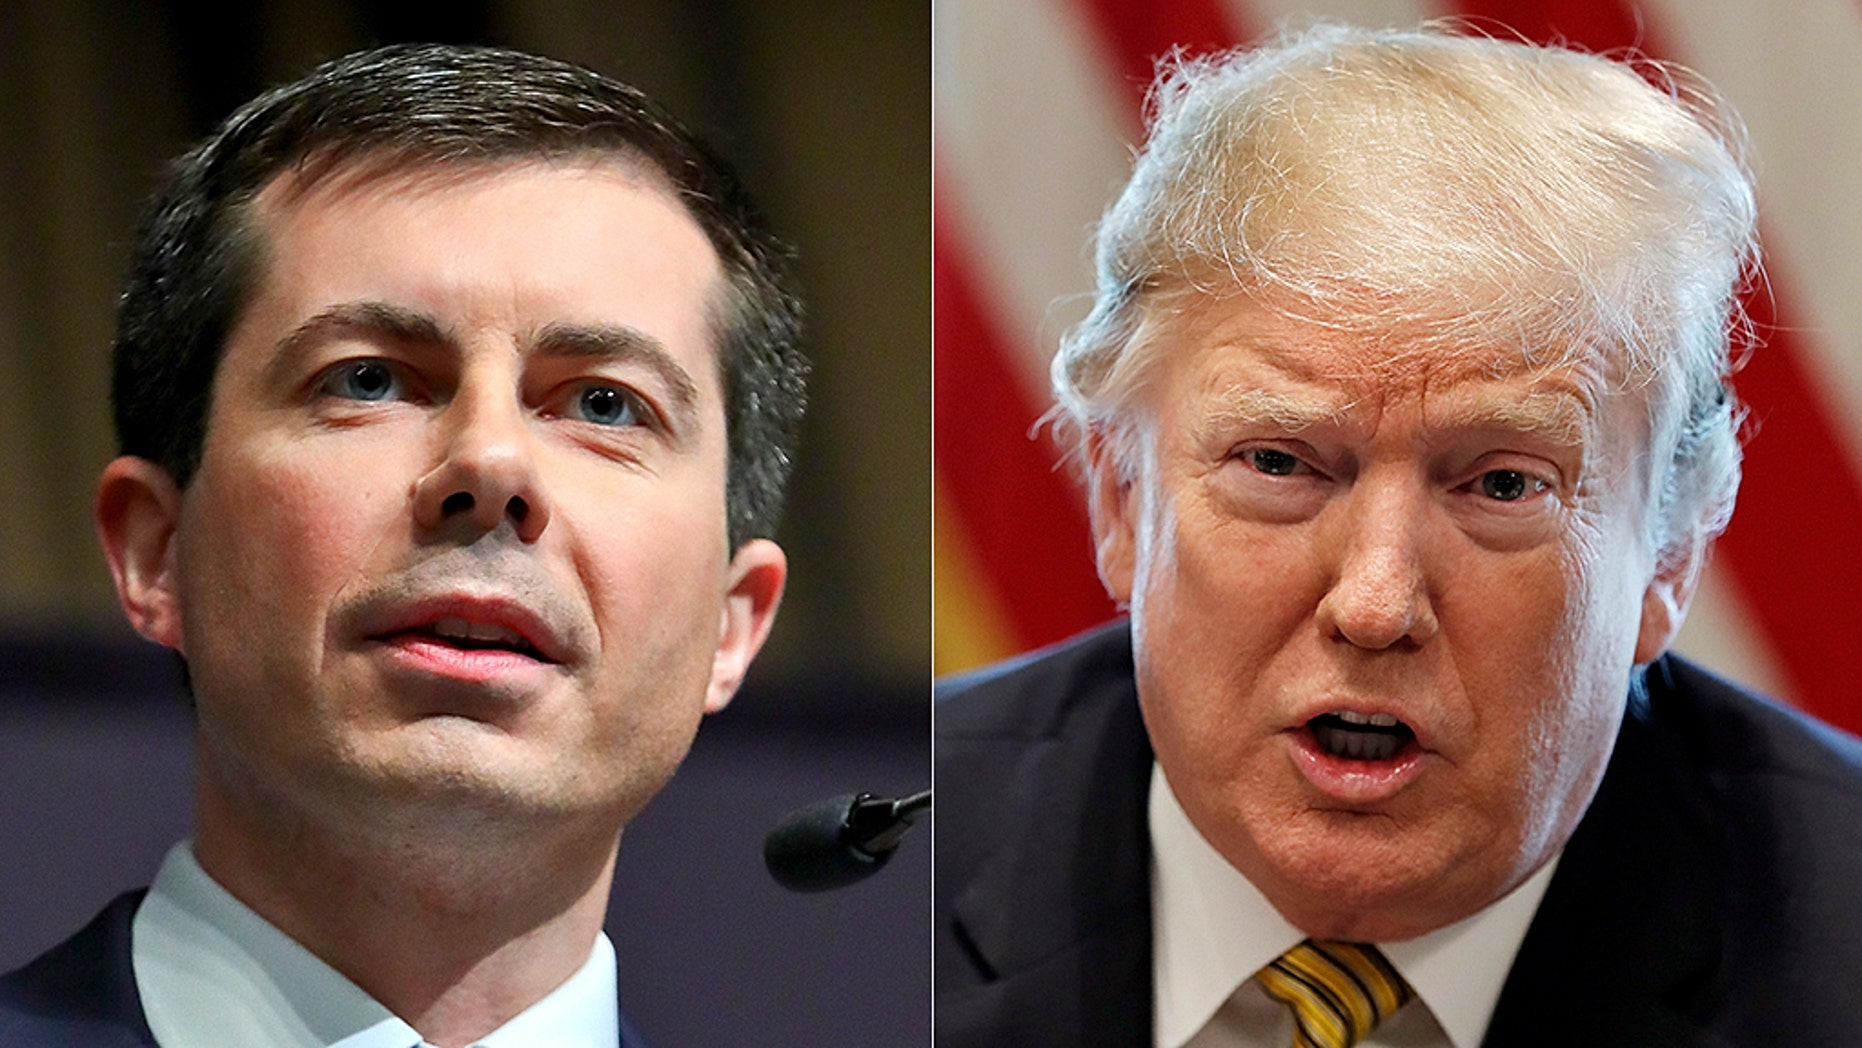 Democratic presidential contender and South Bend, Indiana Mayor Pete Buttigieg said he doubts President Trump is a Christian based on his actions.